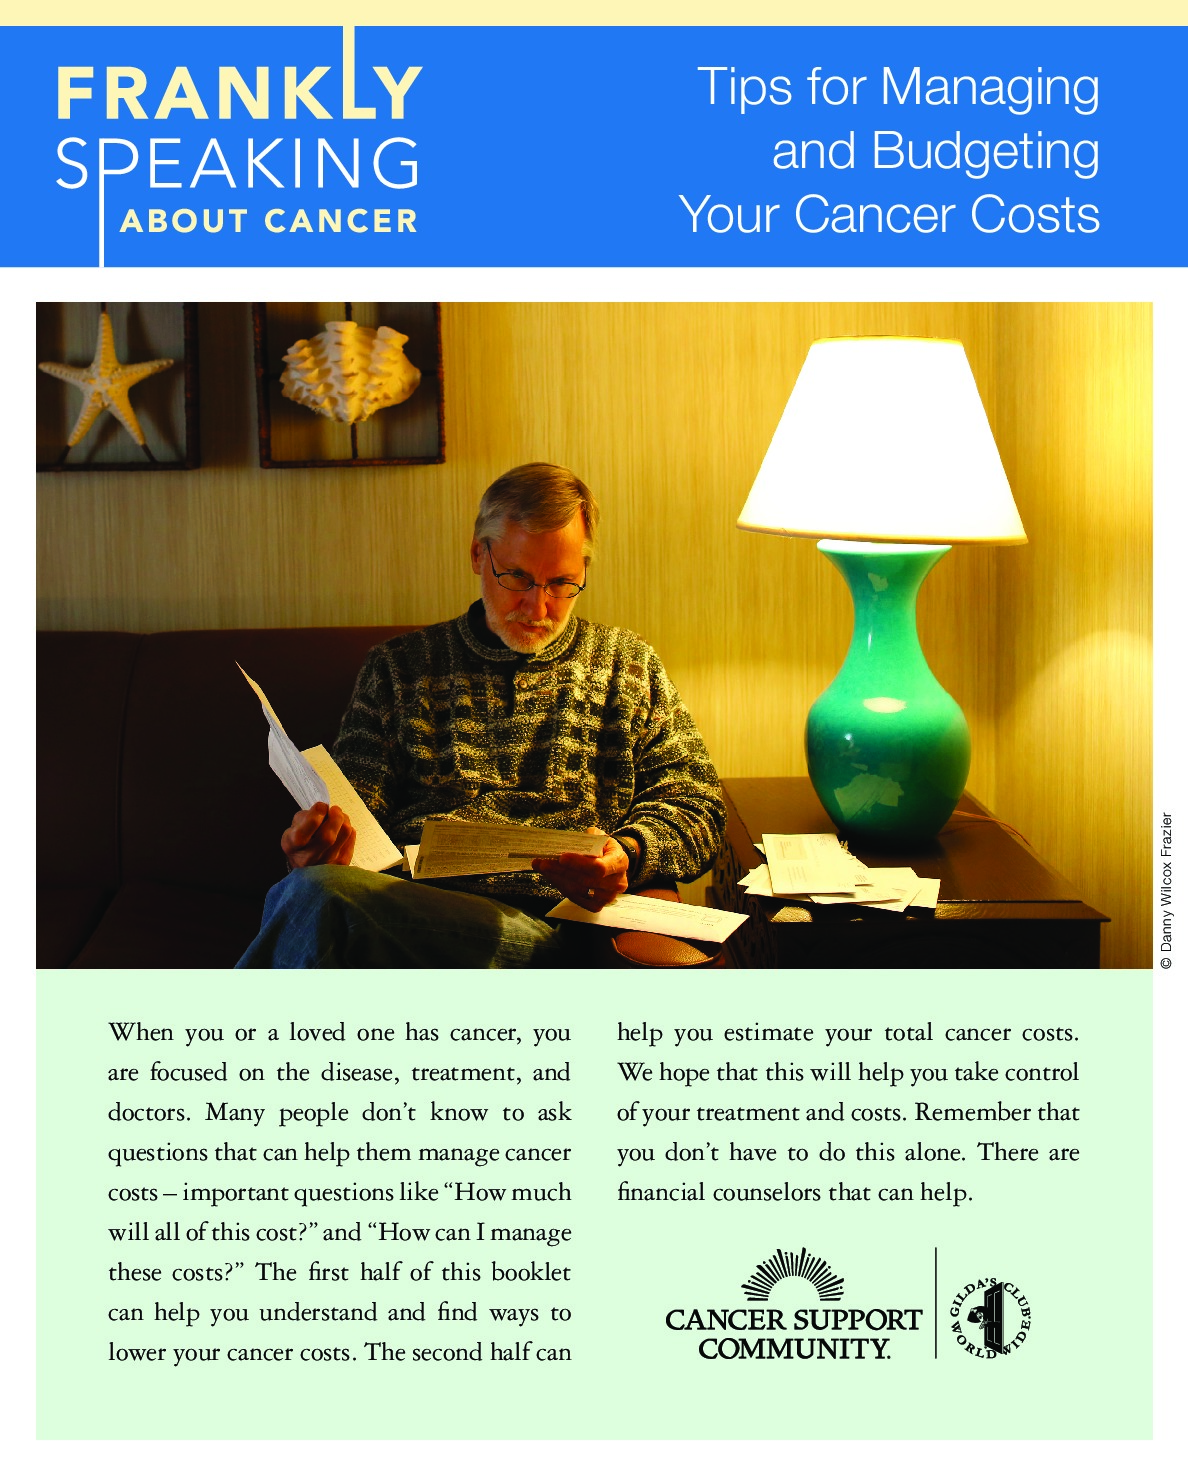 Tips for Managing and Budgeting Your Cancer Costs Booklet